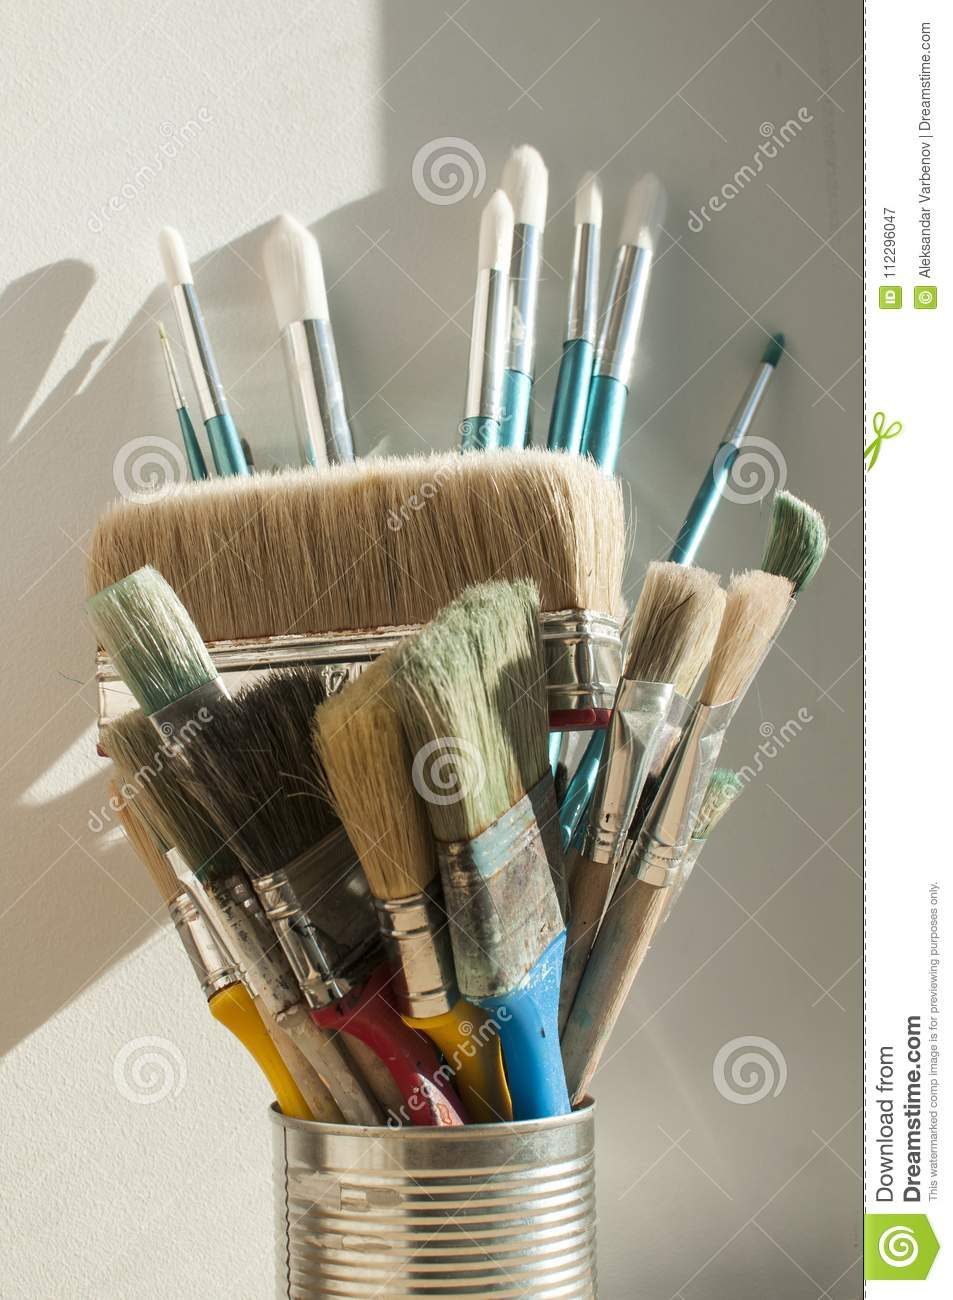 A Bunch Of Paint Brushes Stock Image Image Of Container 112296047